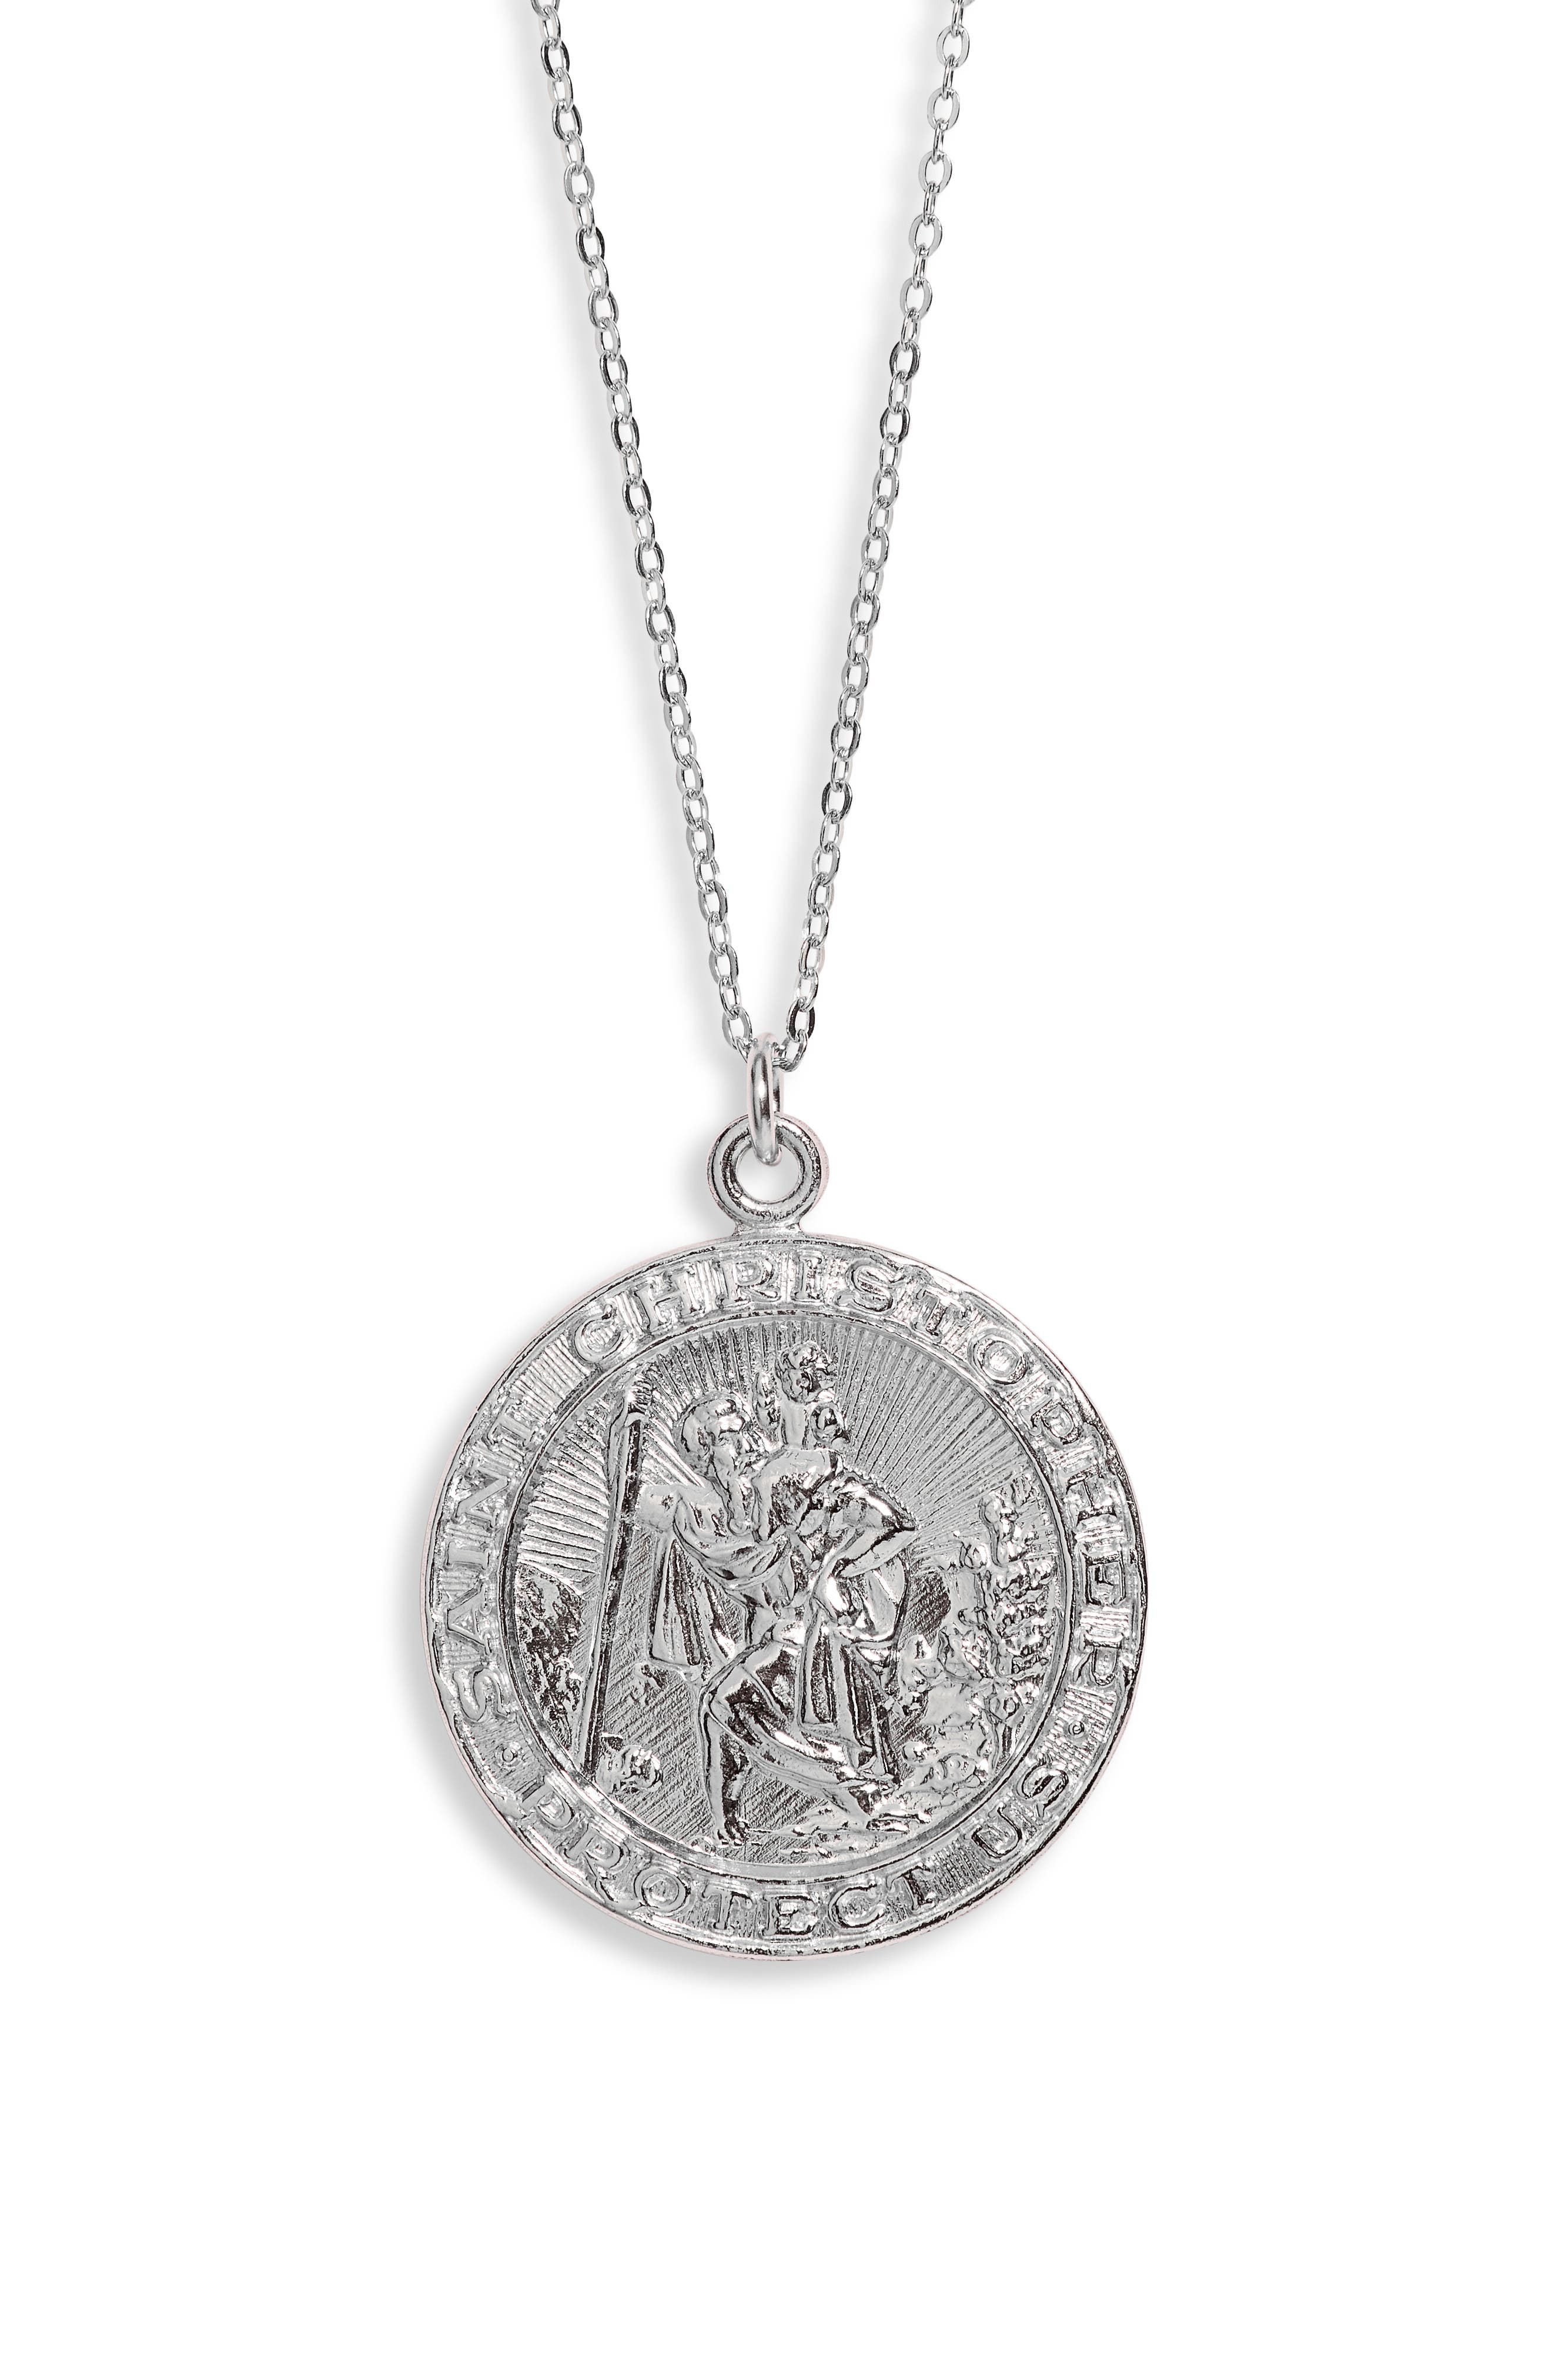 The patron saint of travelers features prominently on the etched pendant of this long, handcrafted necklace that serves as a protective accessory. Style Name: Set & Stones Saint Christopher Pendant Necklace. Style Number: 6093884. Available in stores.